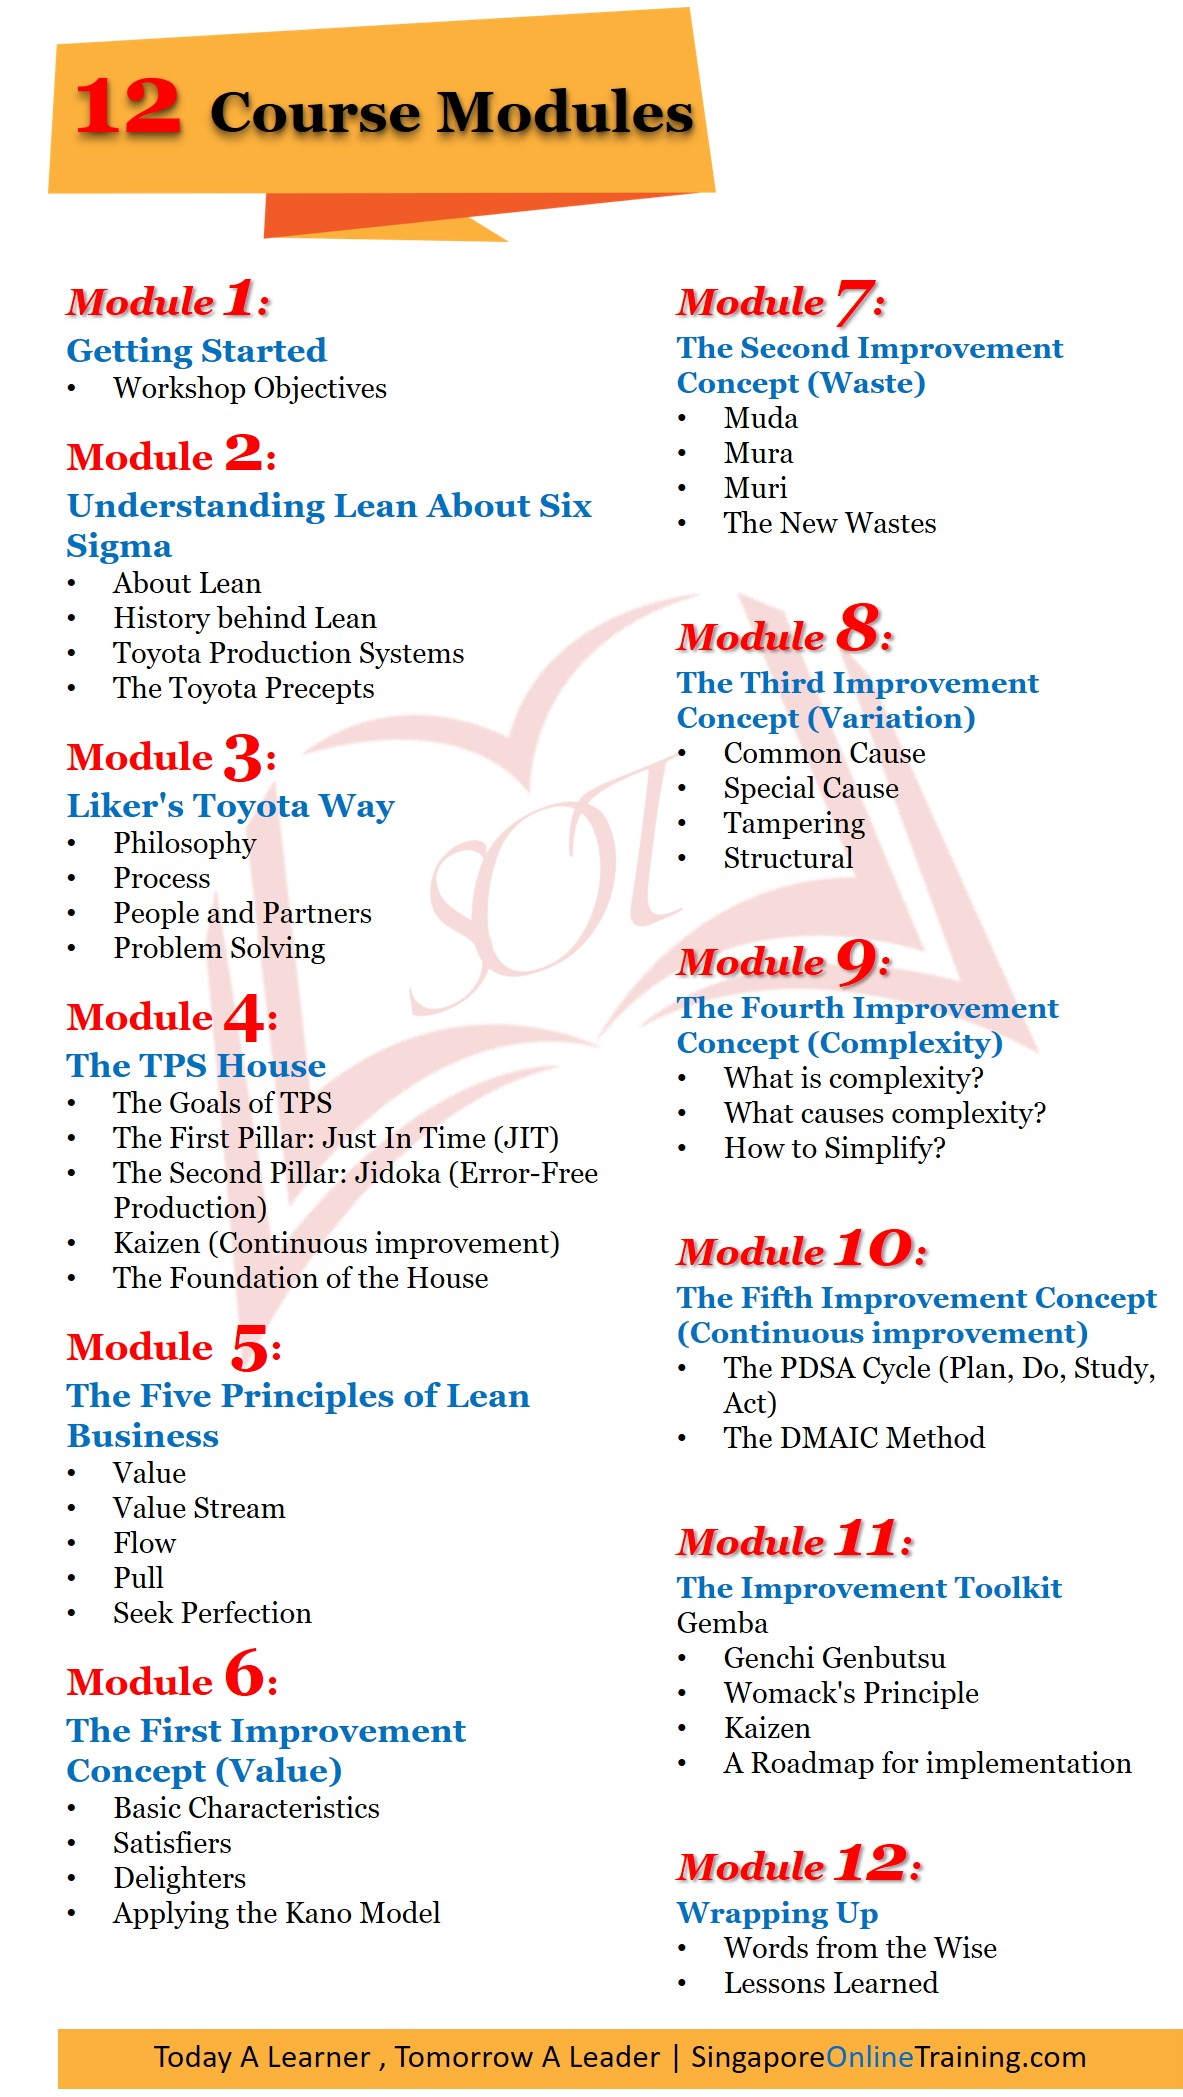 Lean Process And Six Sigma Course Modules